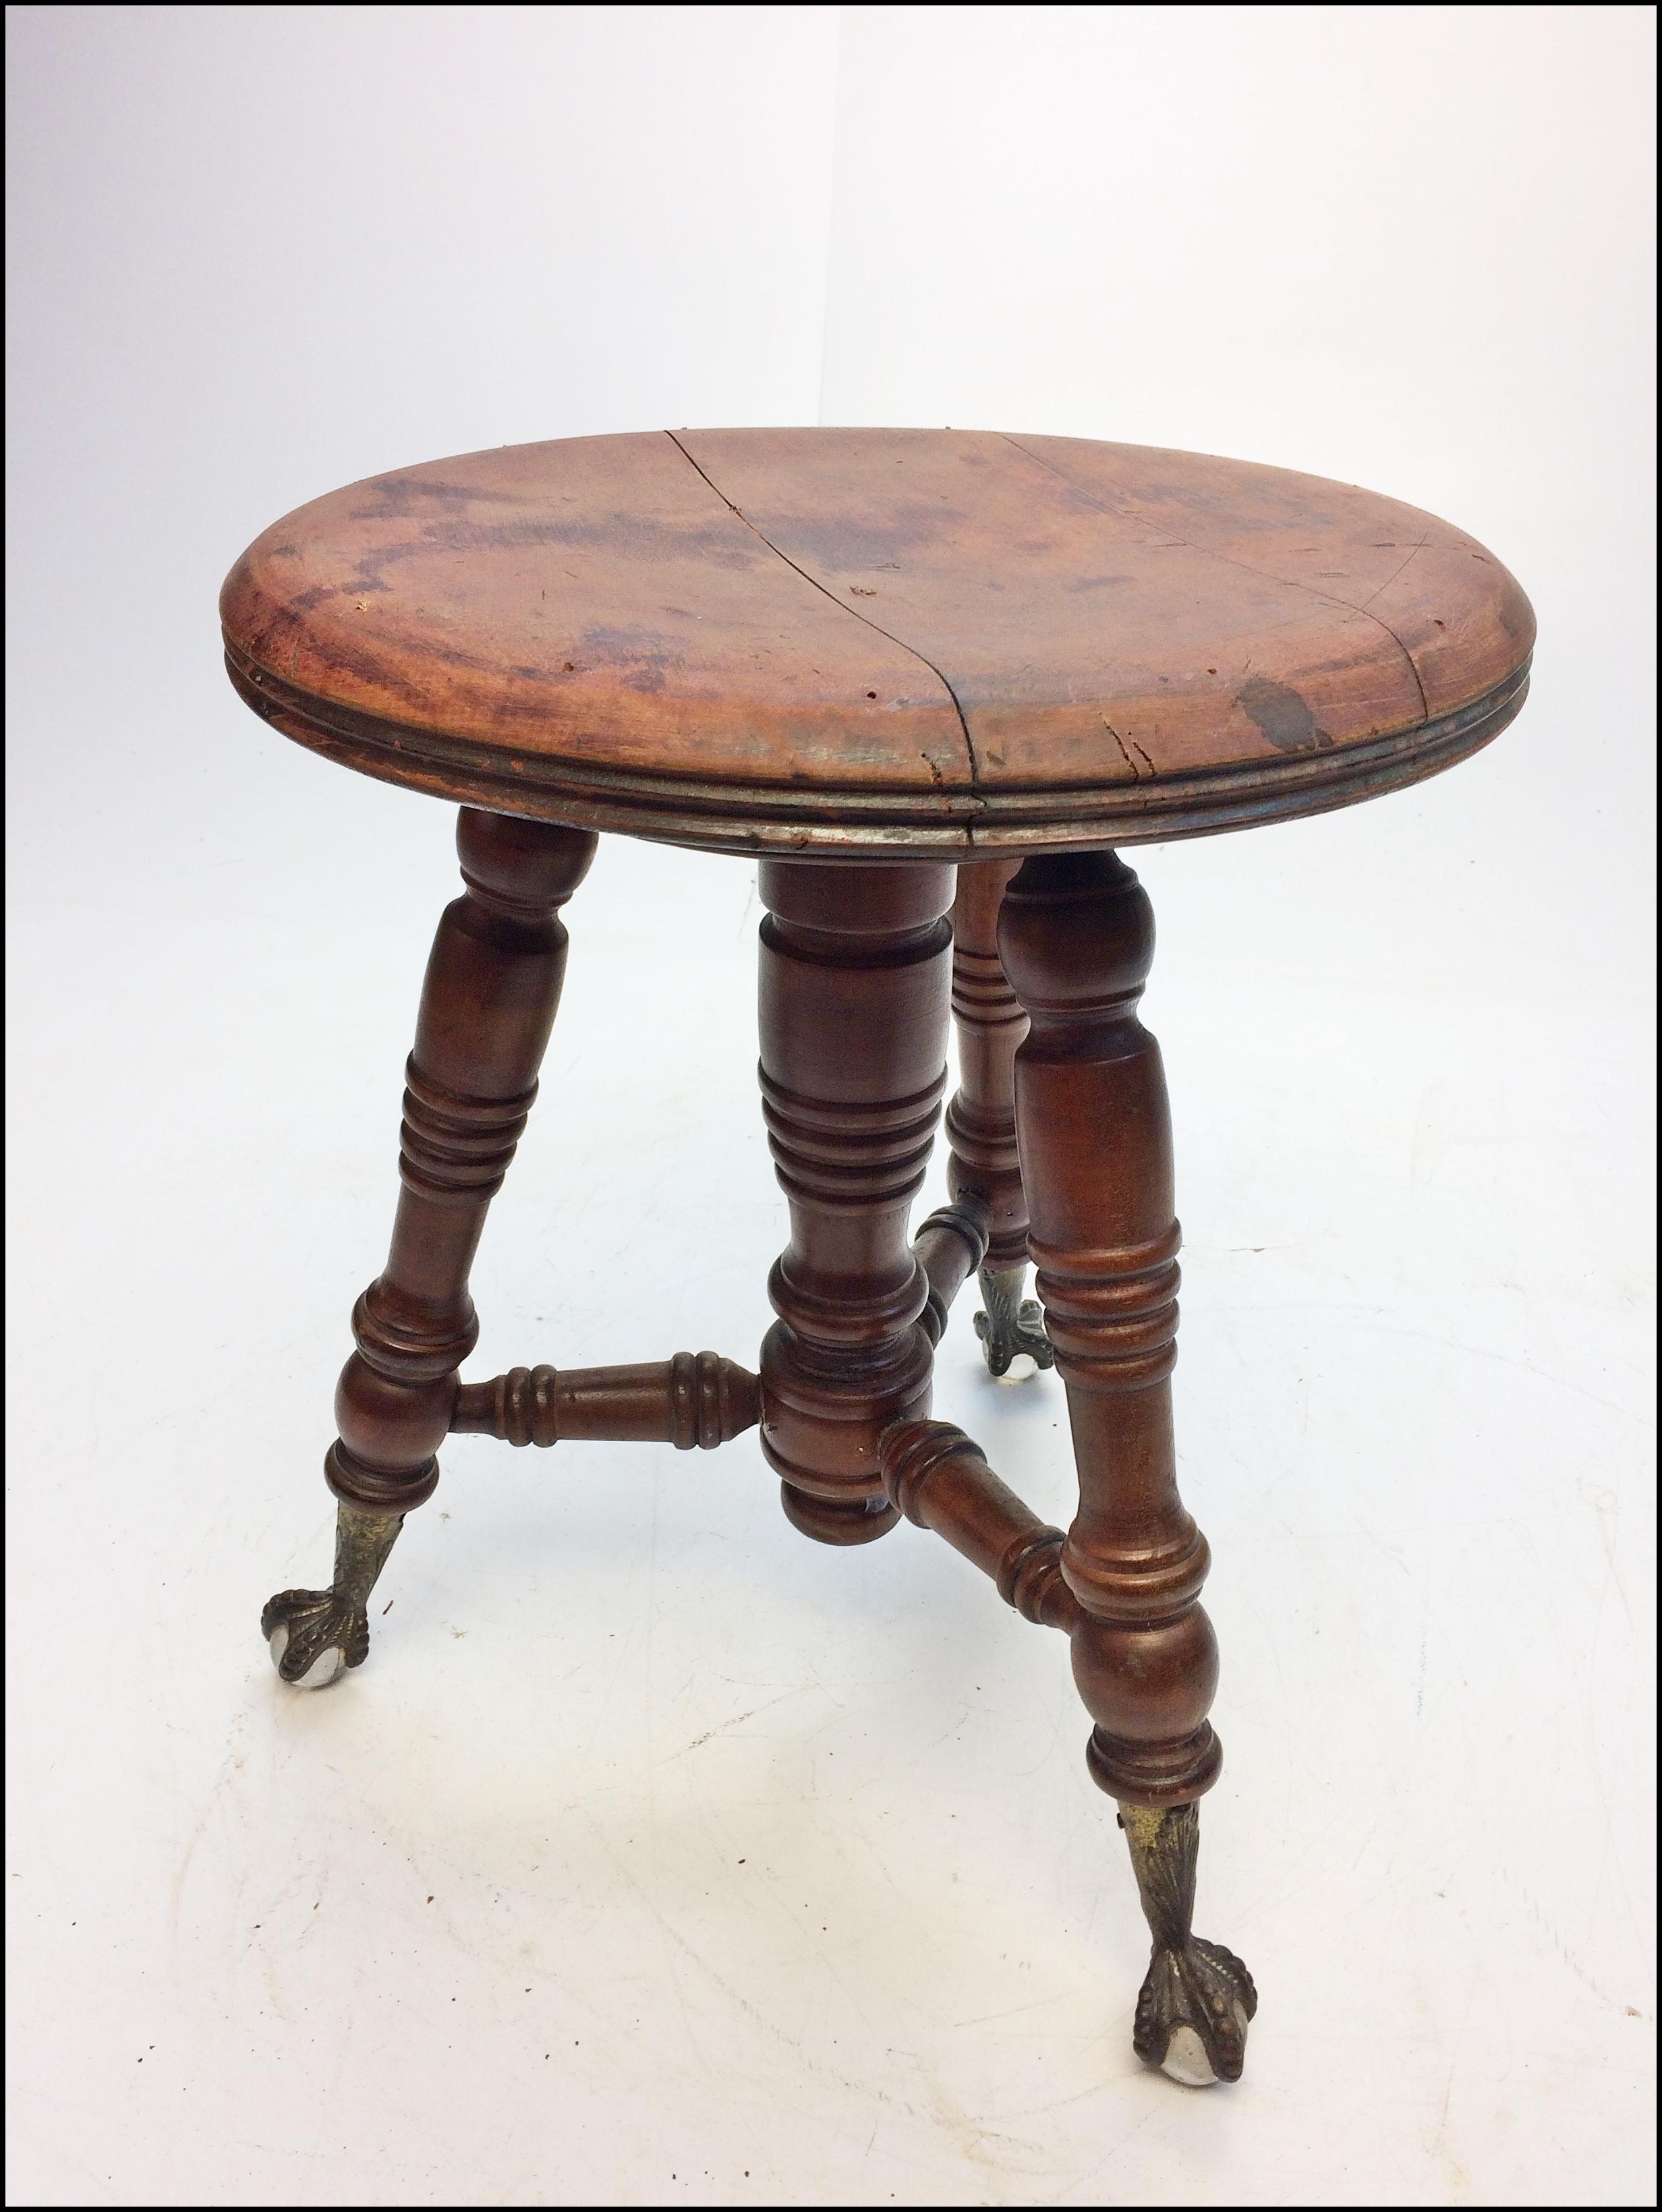 Victorian Carved Wood Piano Stool with Ball u0026 Claw Feet - Image 8 of 11  sc 1 st  Chairish & Victorian Carved Wood Piano Stool with Ball u0026 Claw Feet | Chairish islam-shia.org